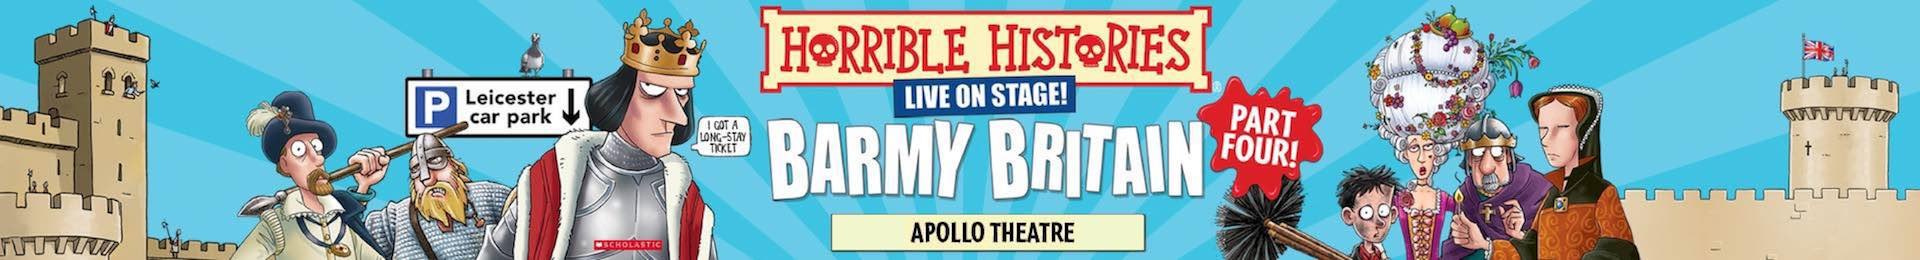 Horrible Histories: Barmy Britain - Part Four! banner image